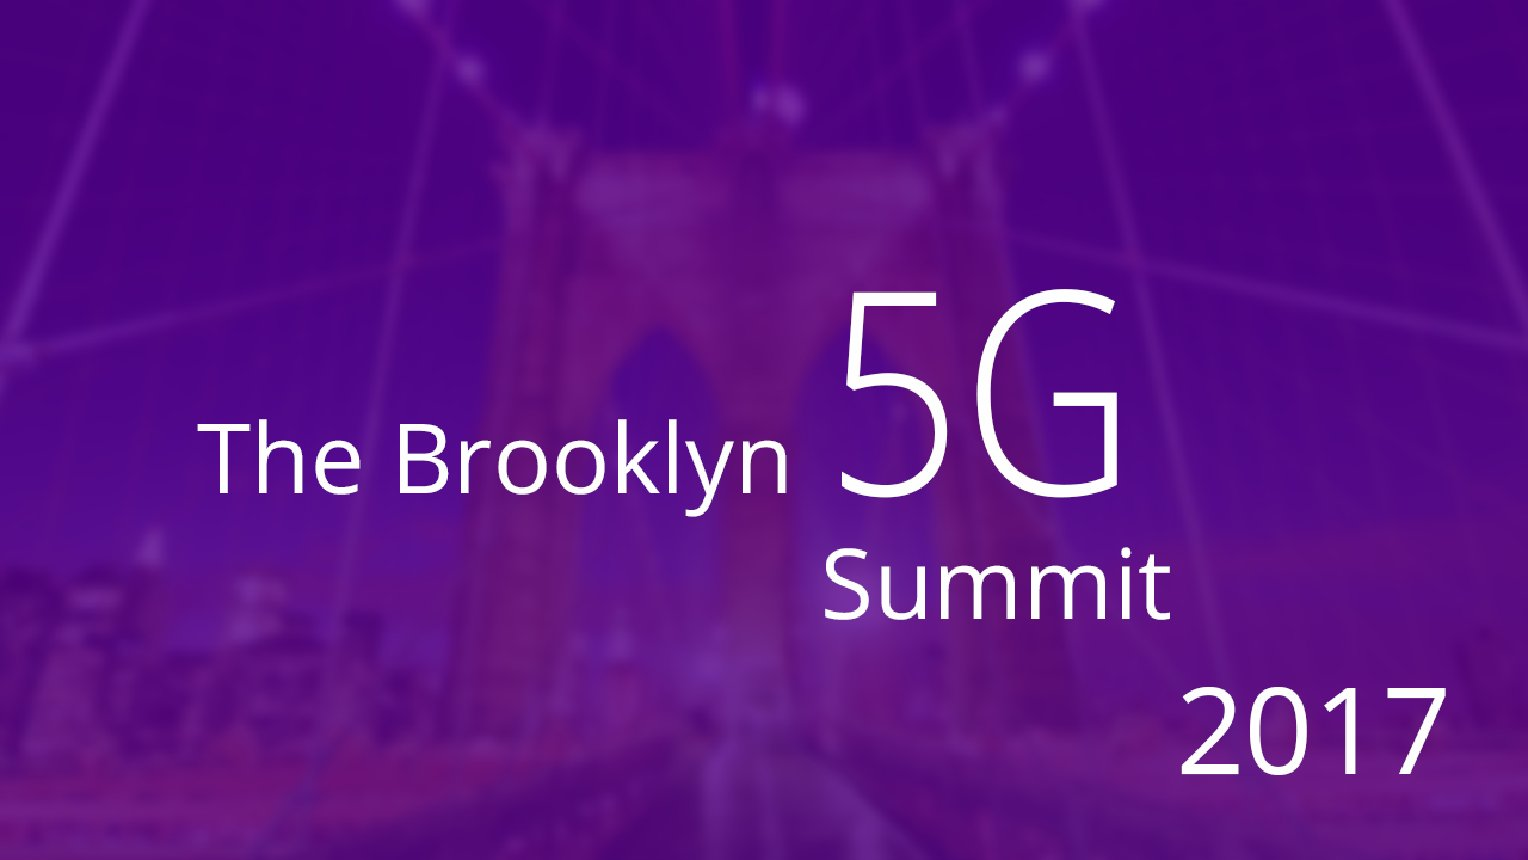 Brooklyn 5G Summit 2017 - Day 1 Full Stream